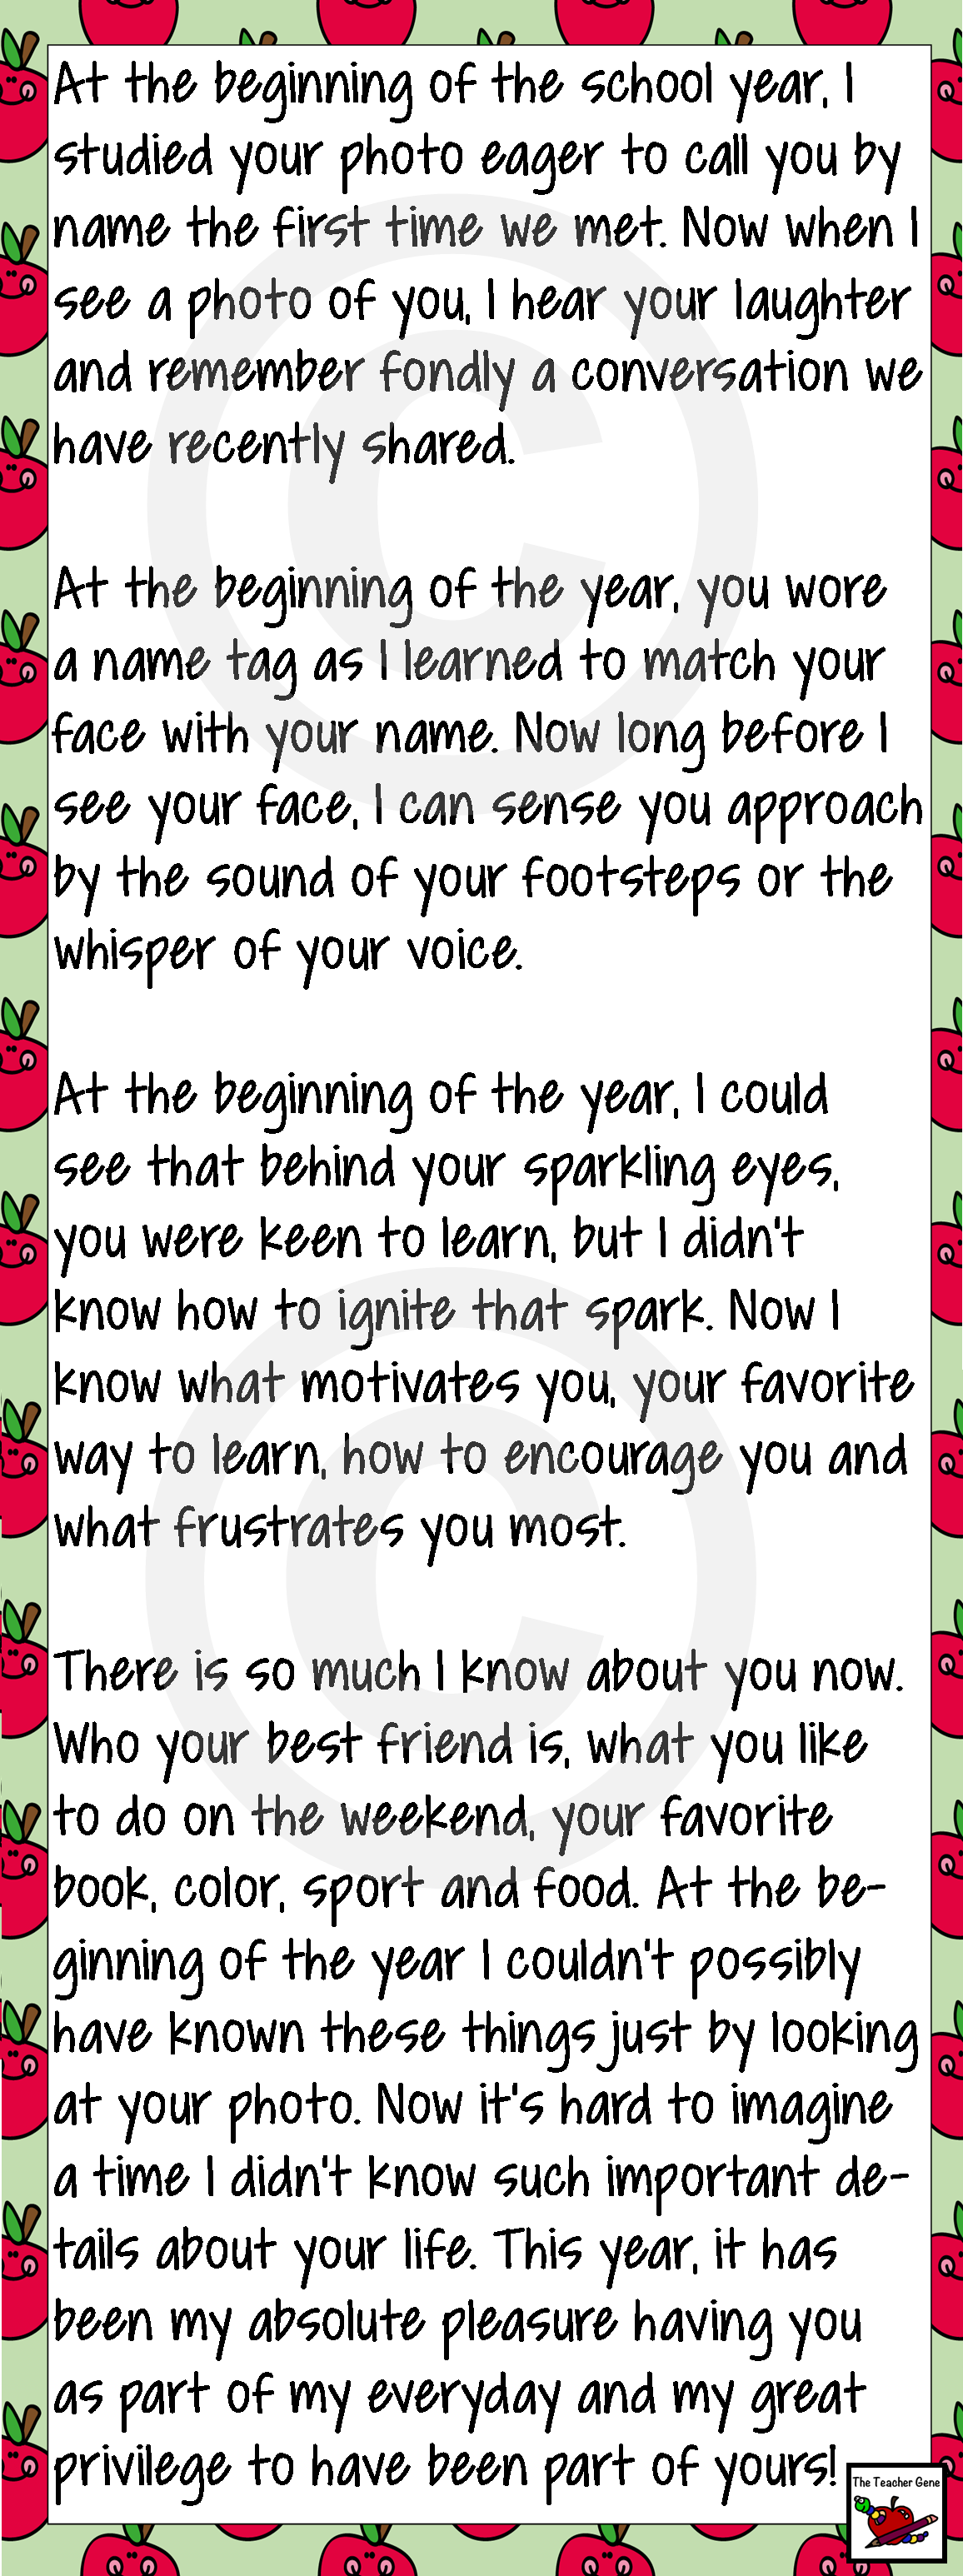 End of Year Letter From Your Teacher School Teacher and